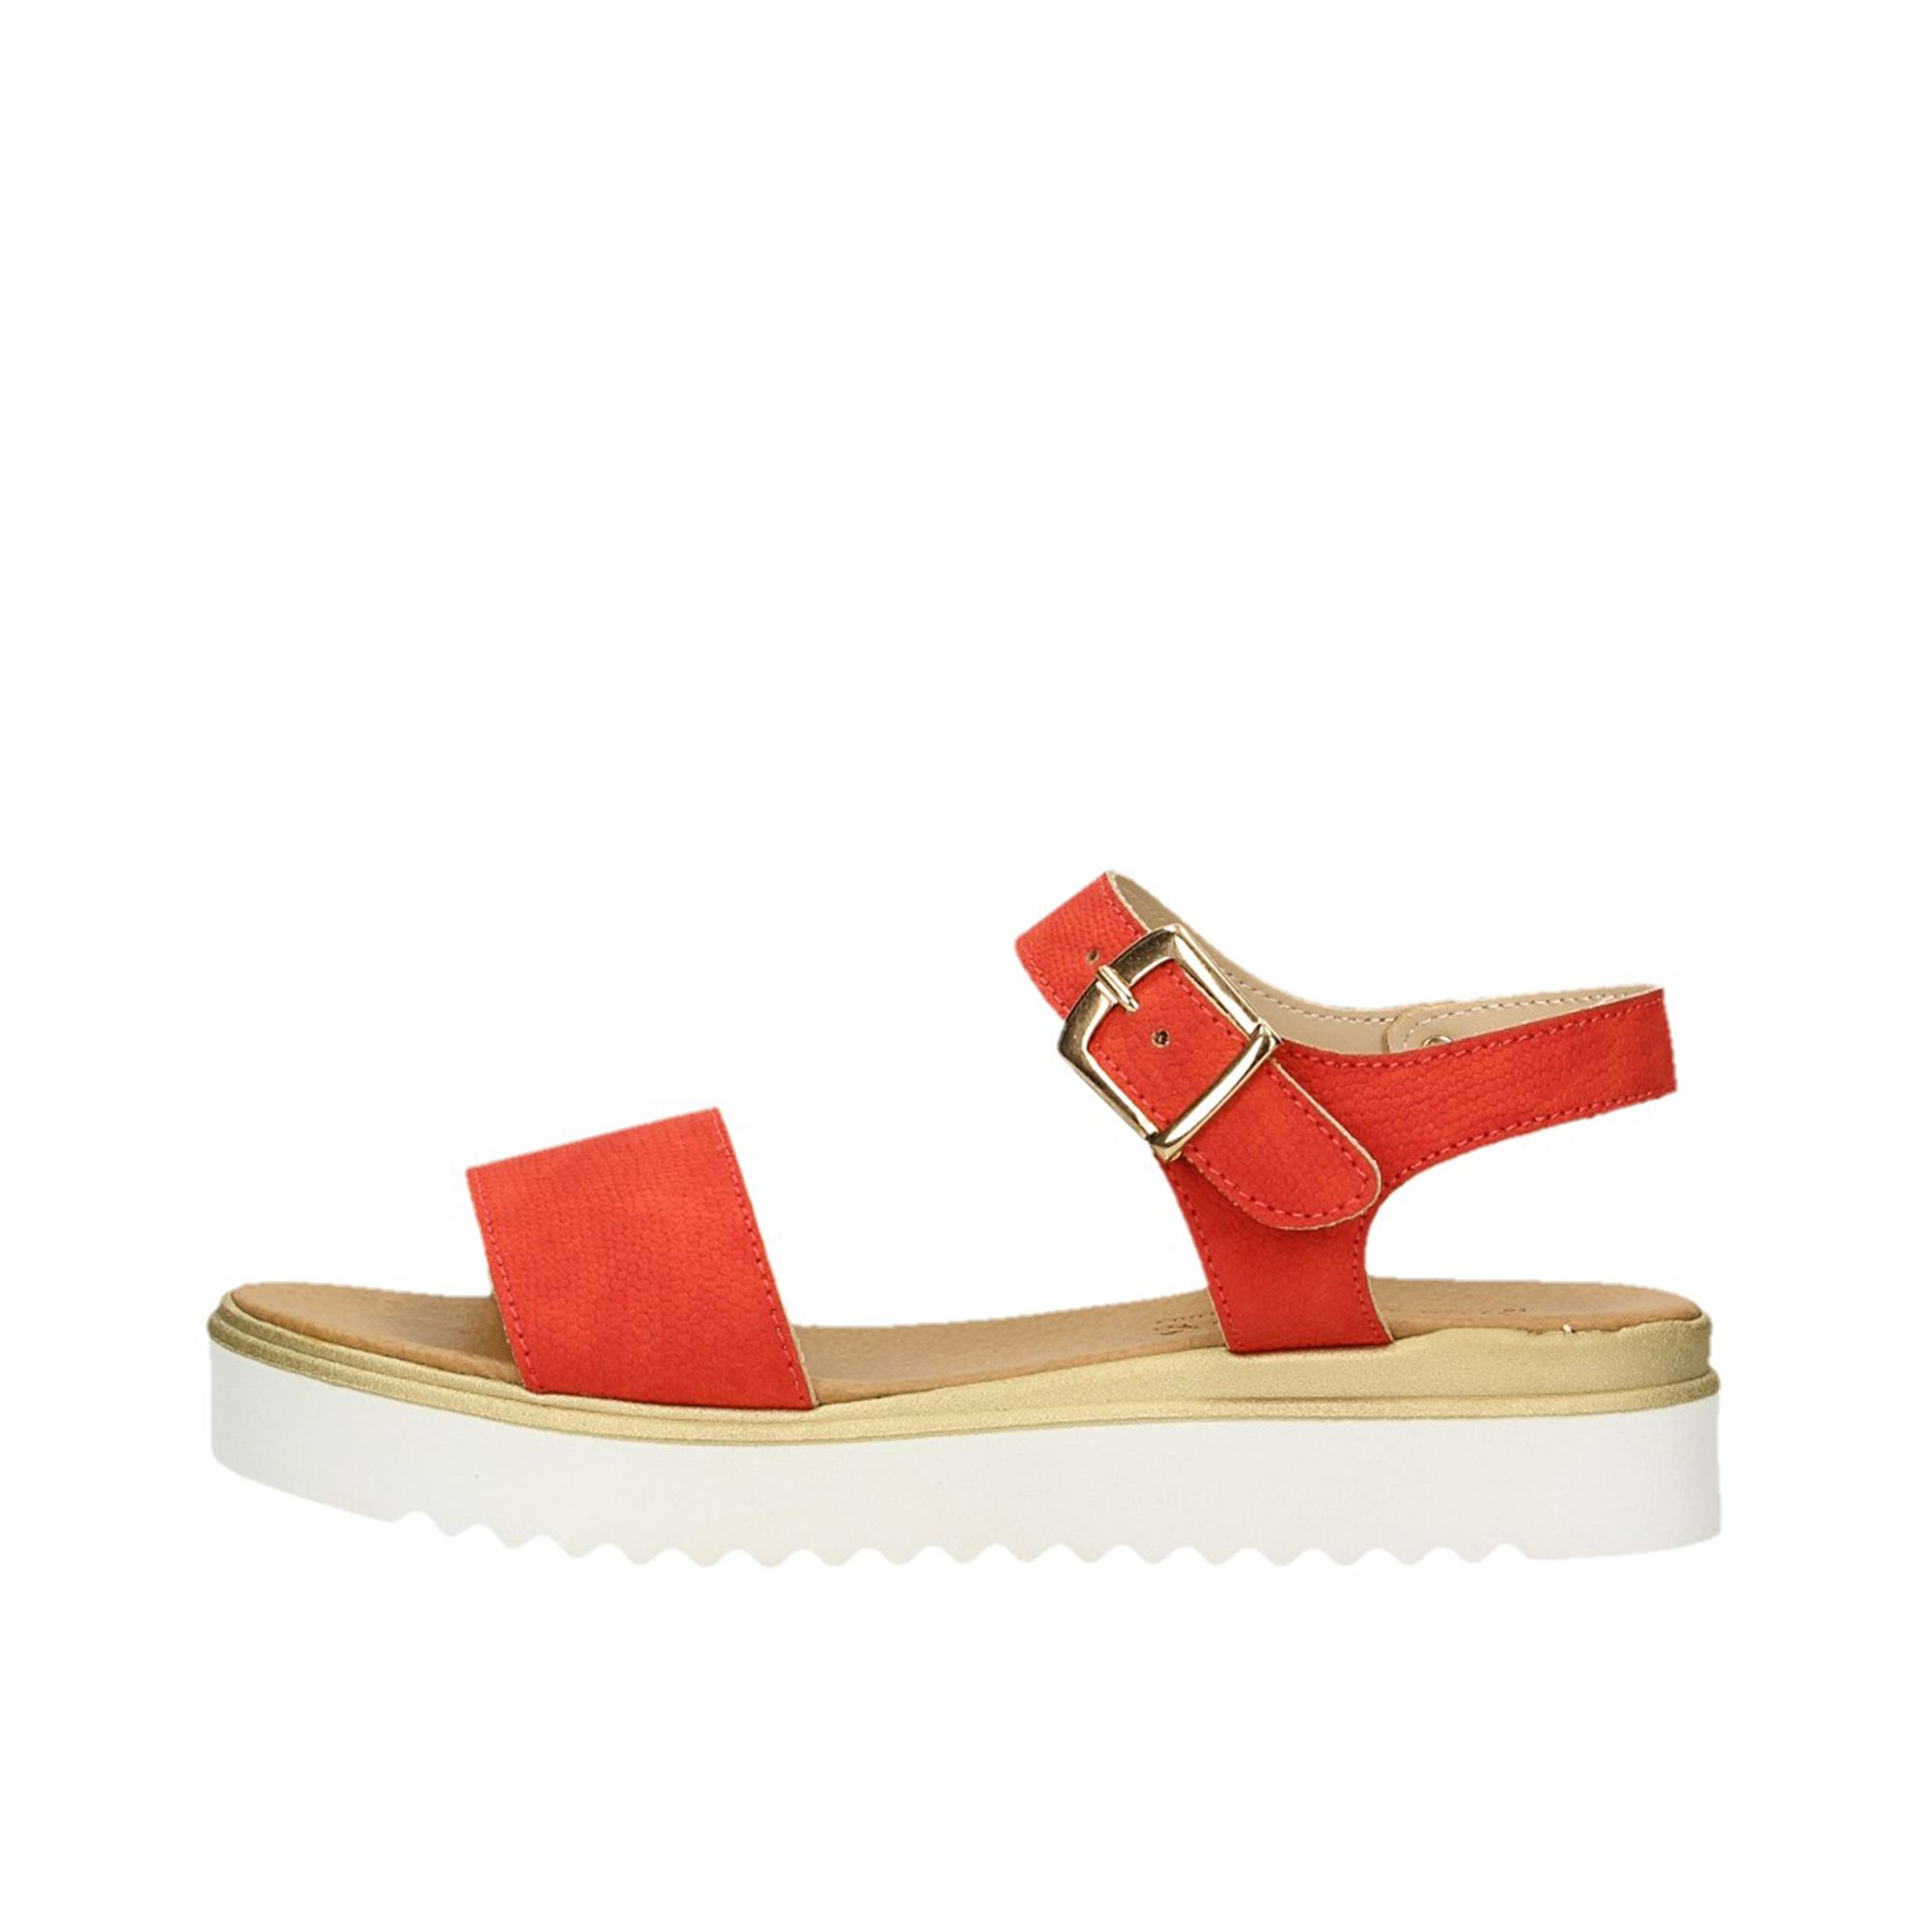 Tata Italia Shoes Woman Sandali Red 433-6147